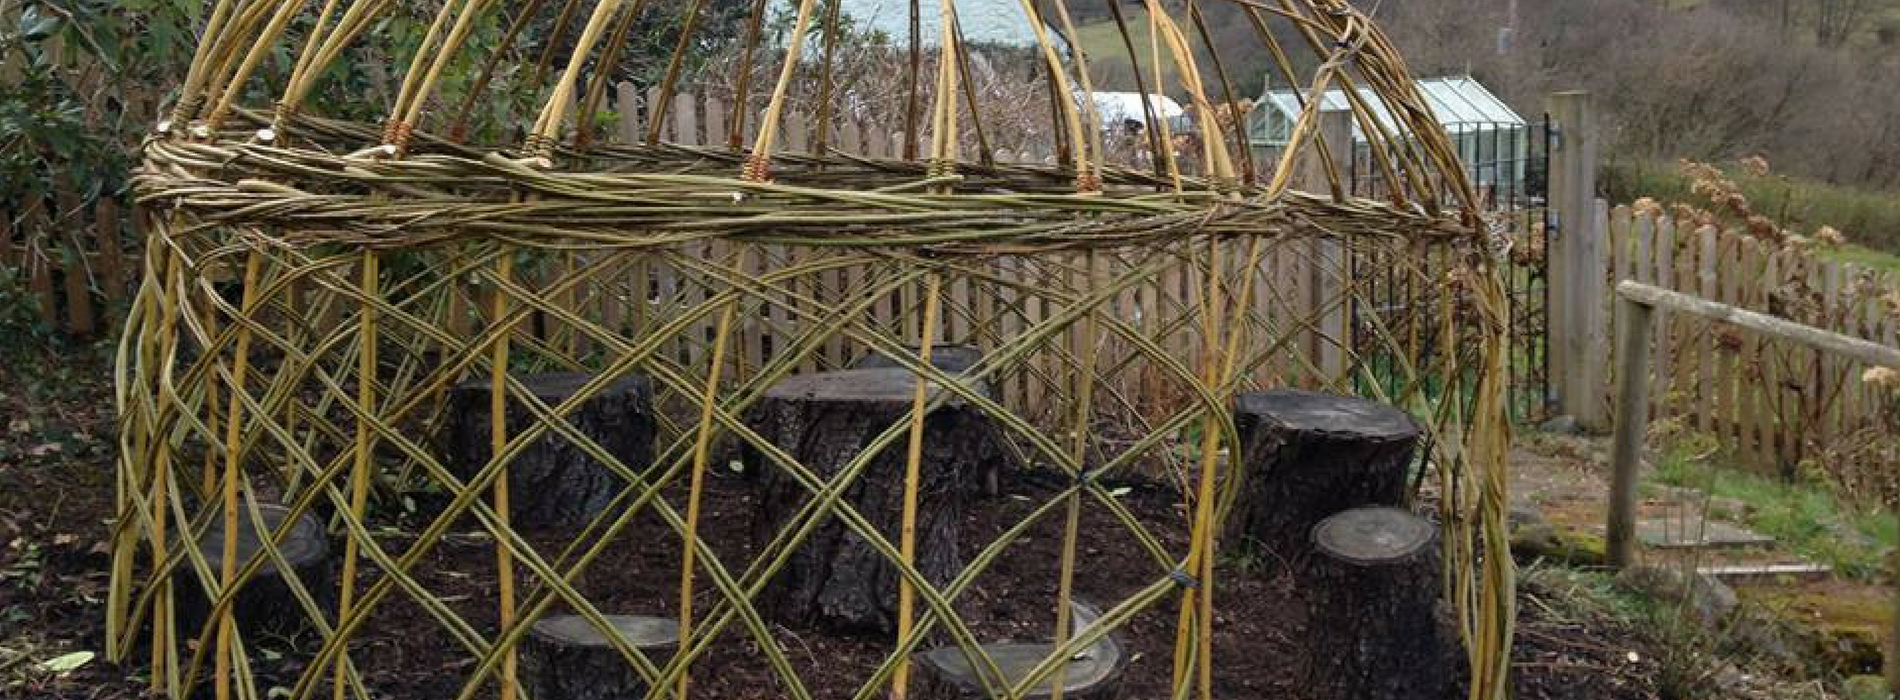 Wyldwood Willow Living Willow Dome